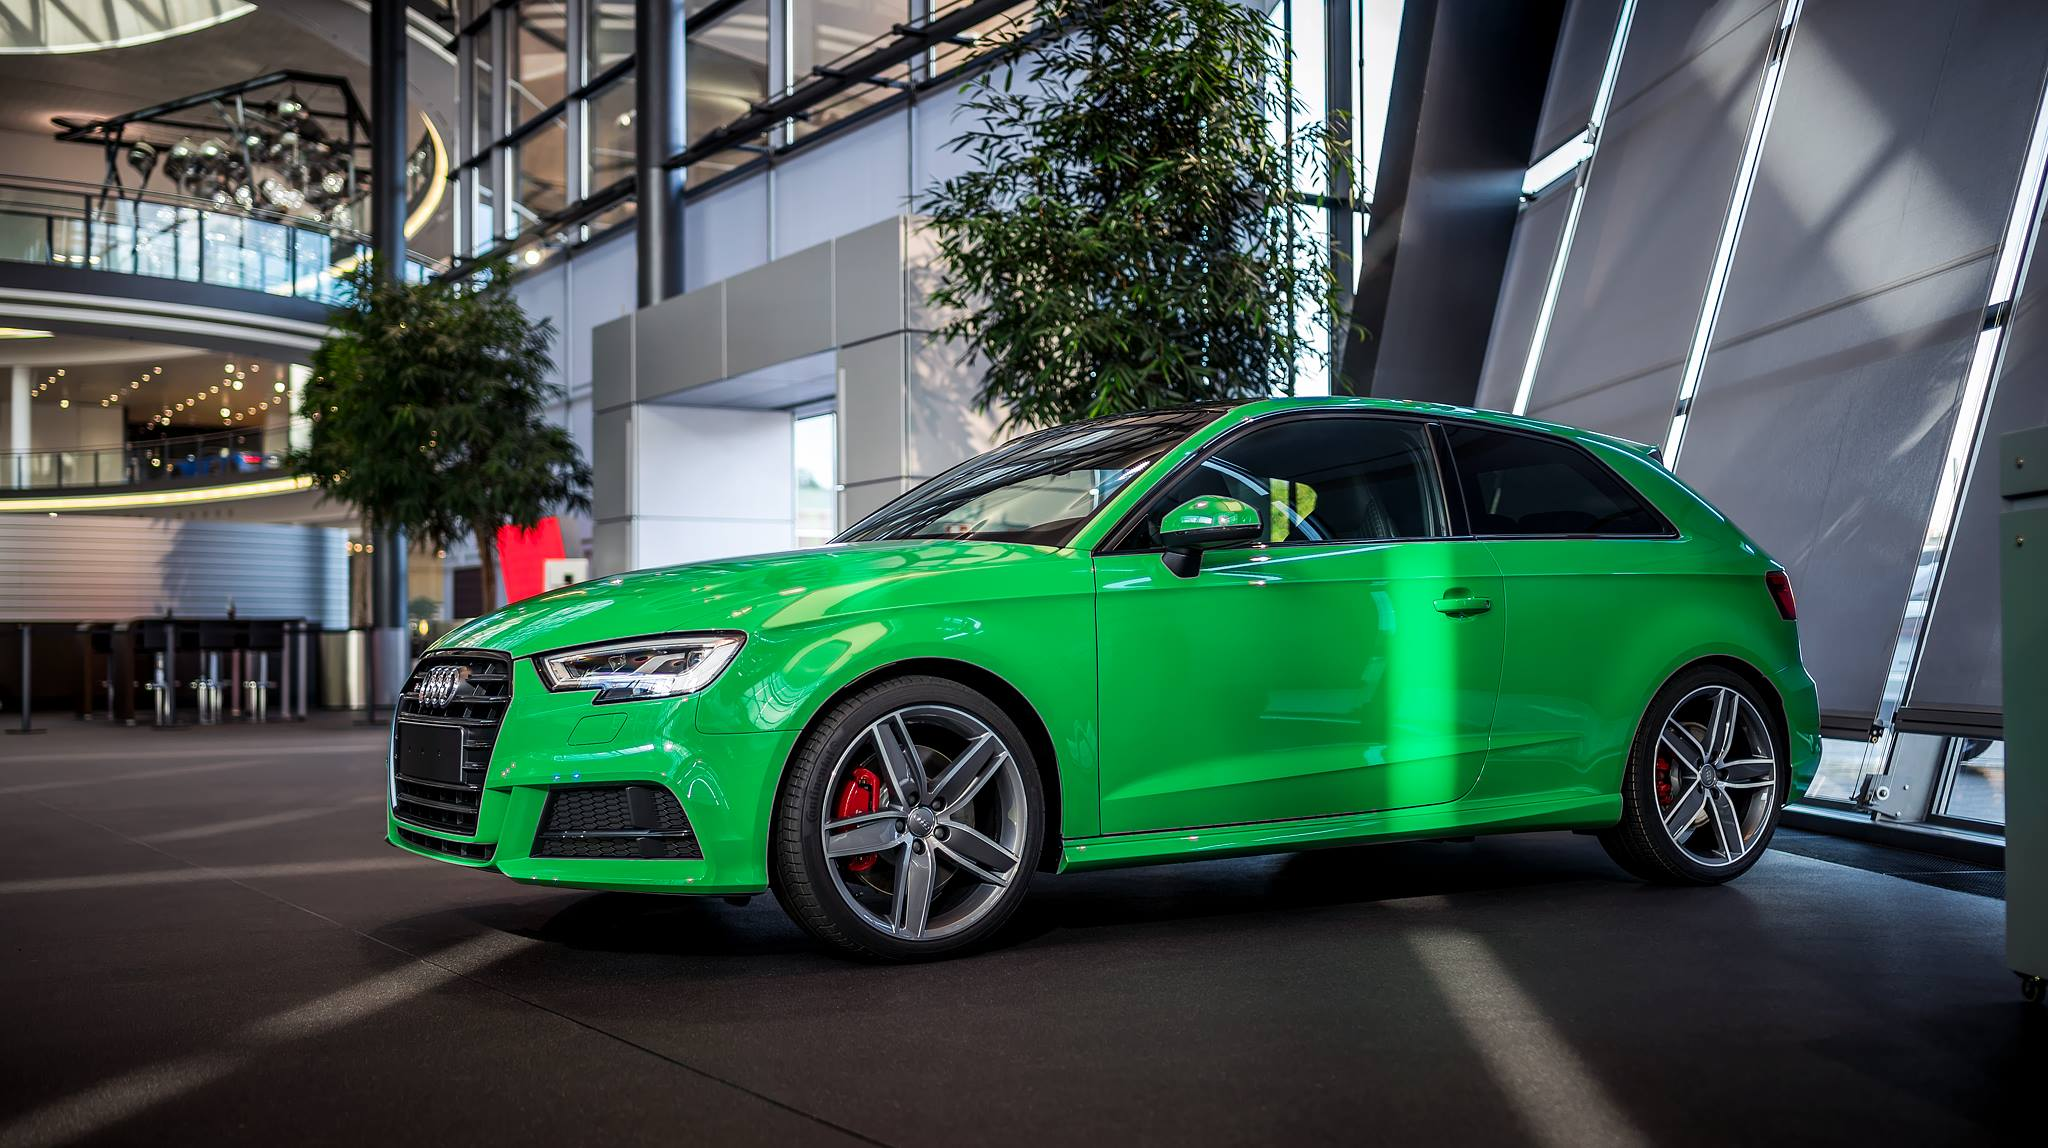 2017 Audi S3 Reaches 266 km/h in Speed Test, New Features ...